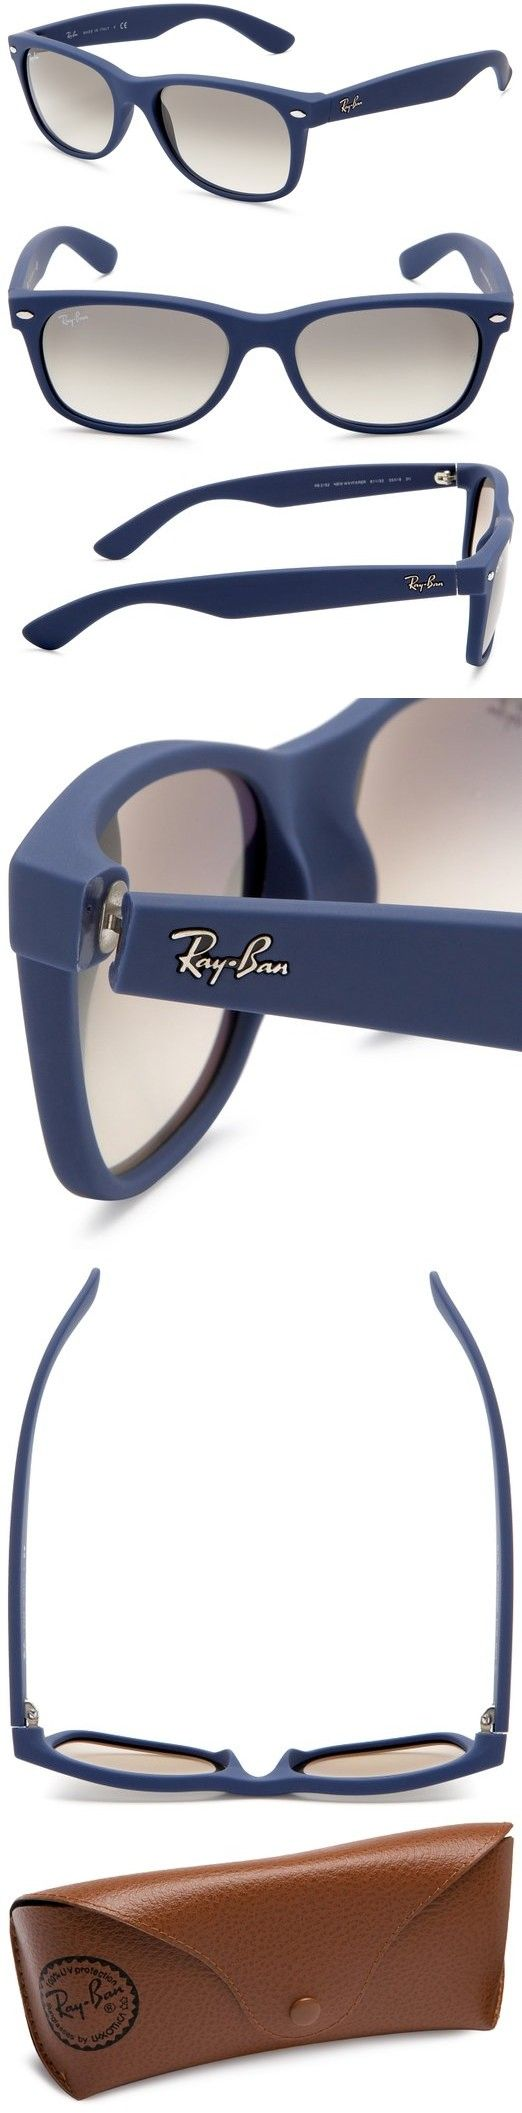 sunglasses ray ban buy ray bans for sale by people